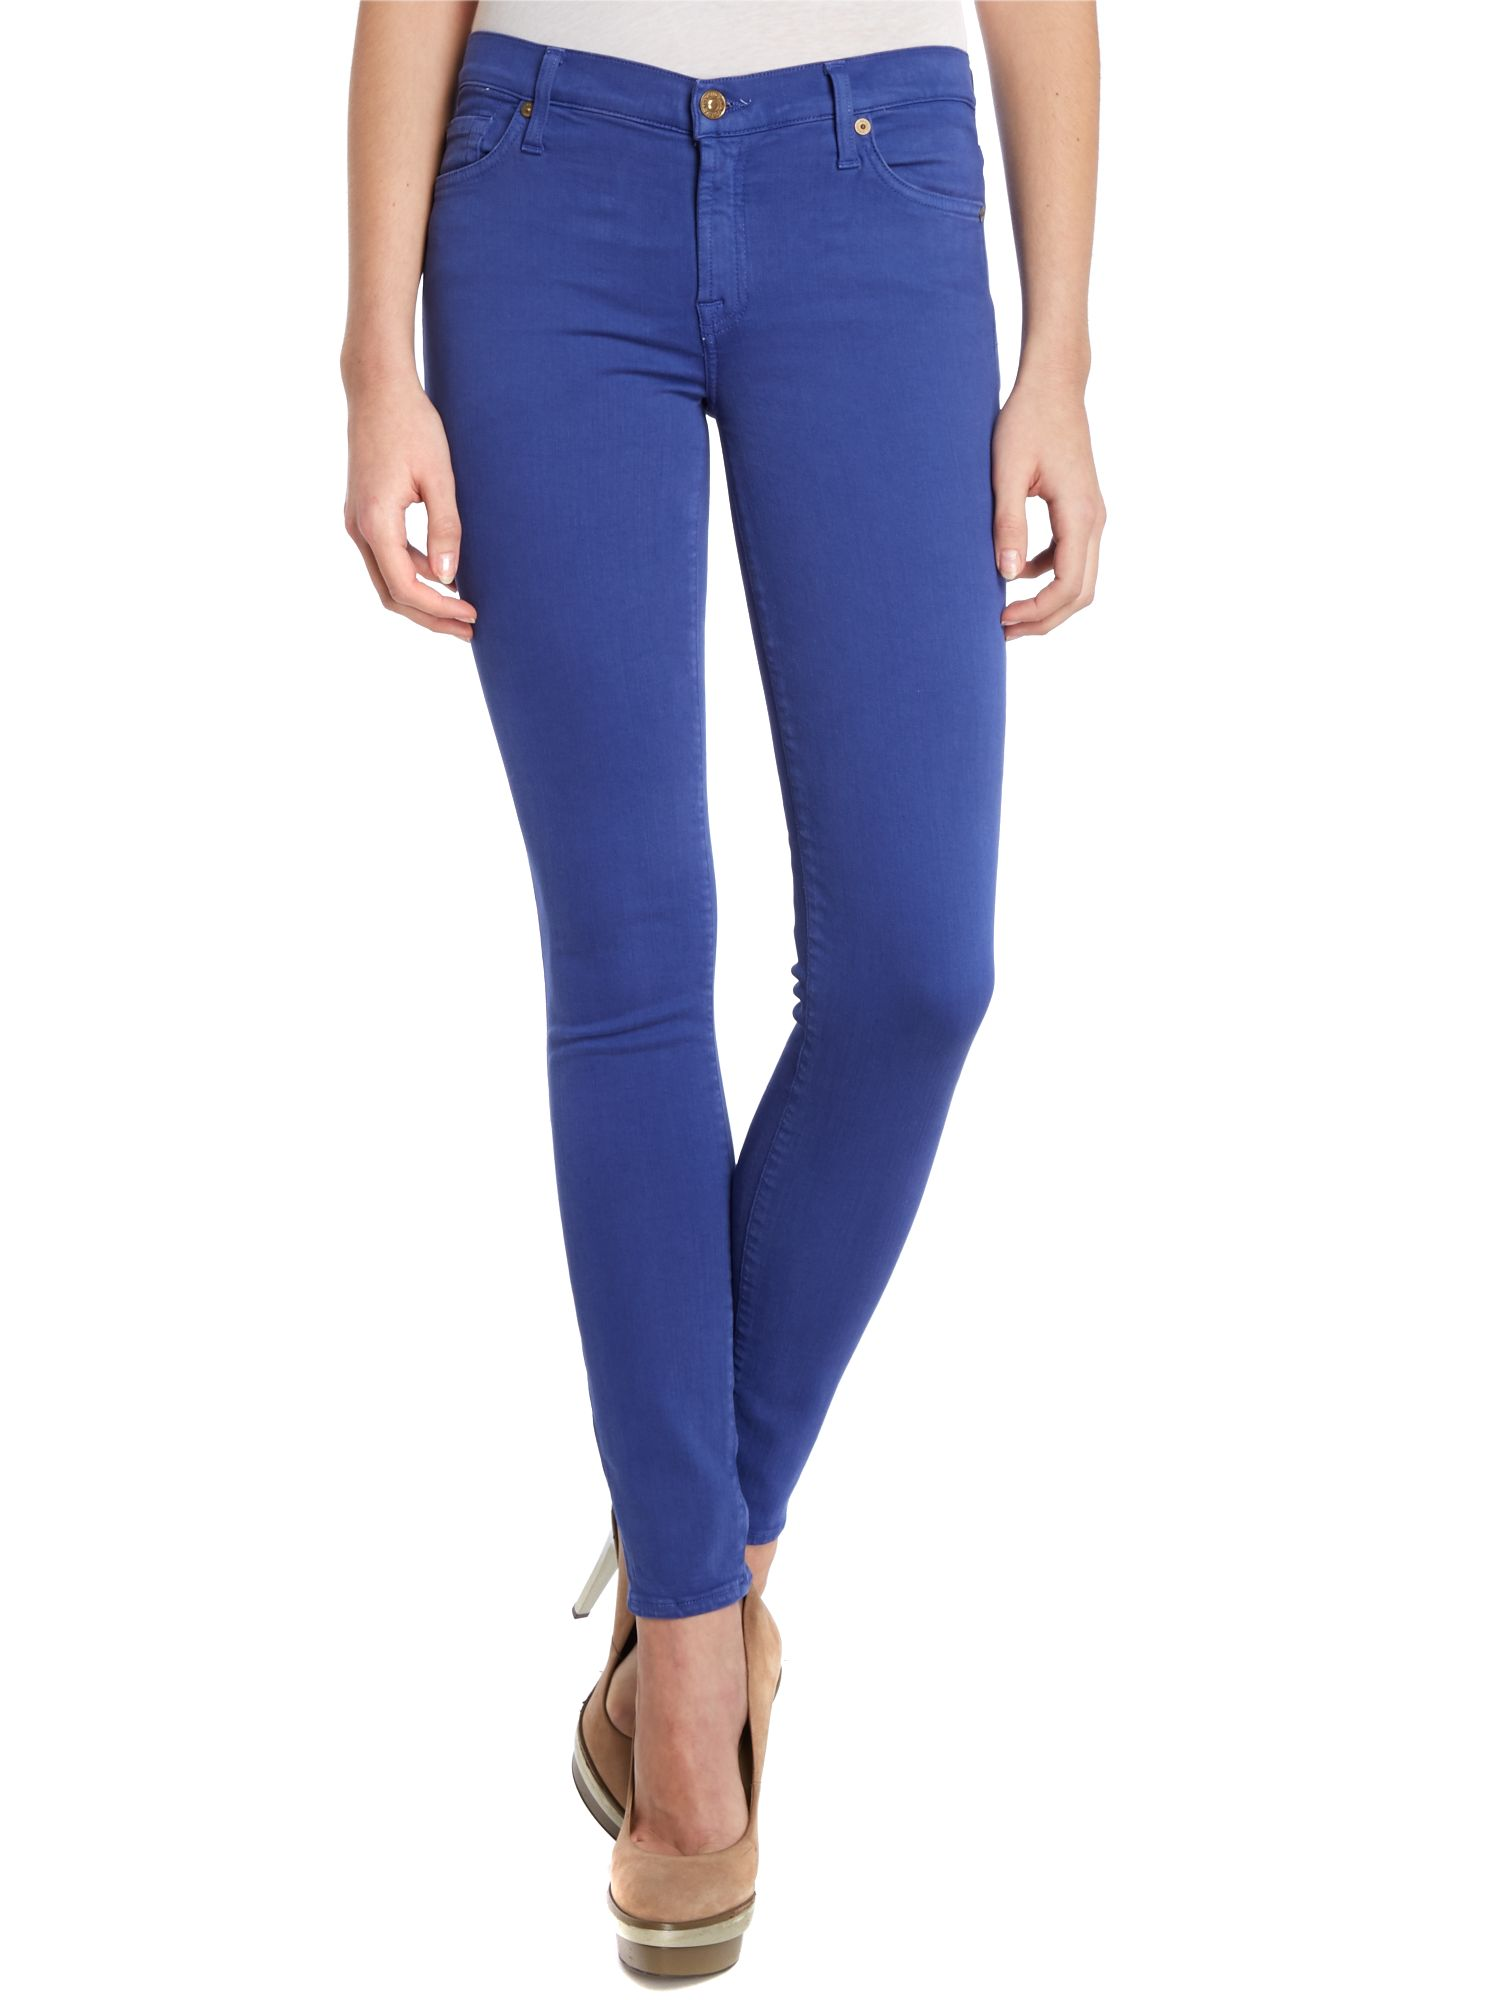 The Skinny jeans in Royal Blue